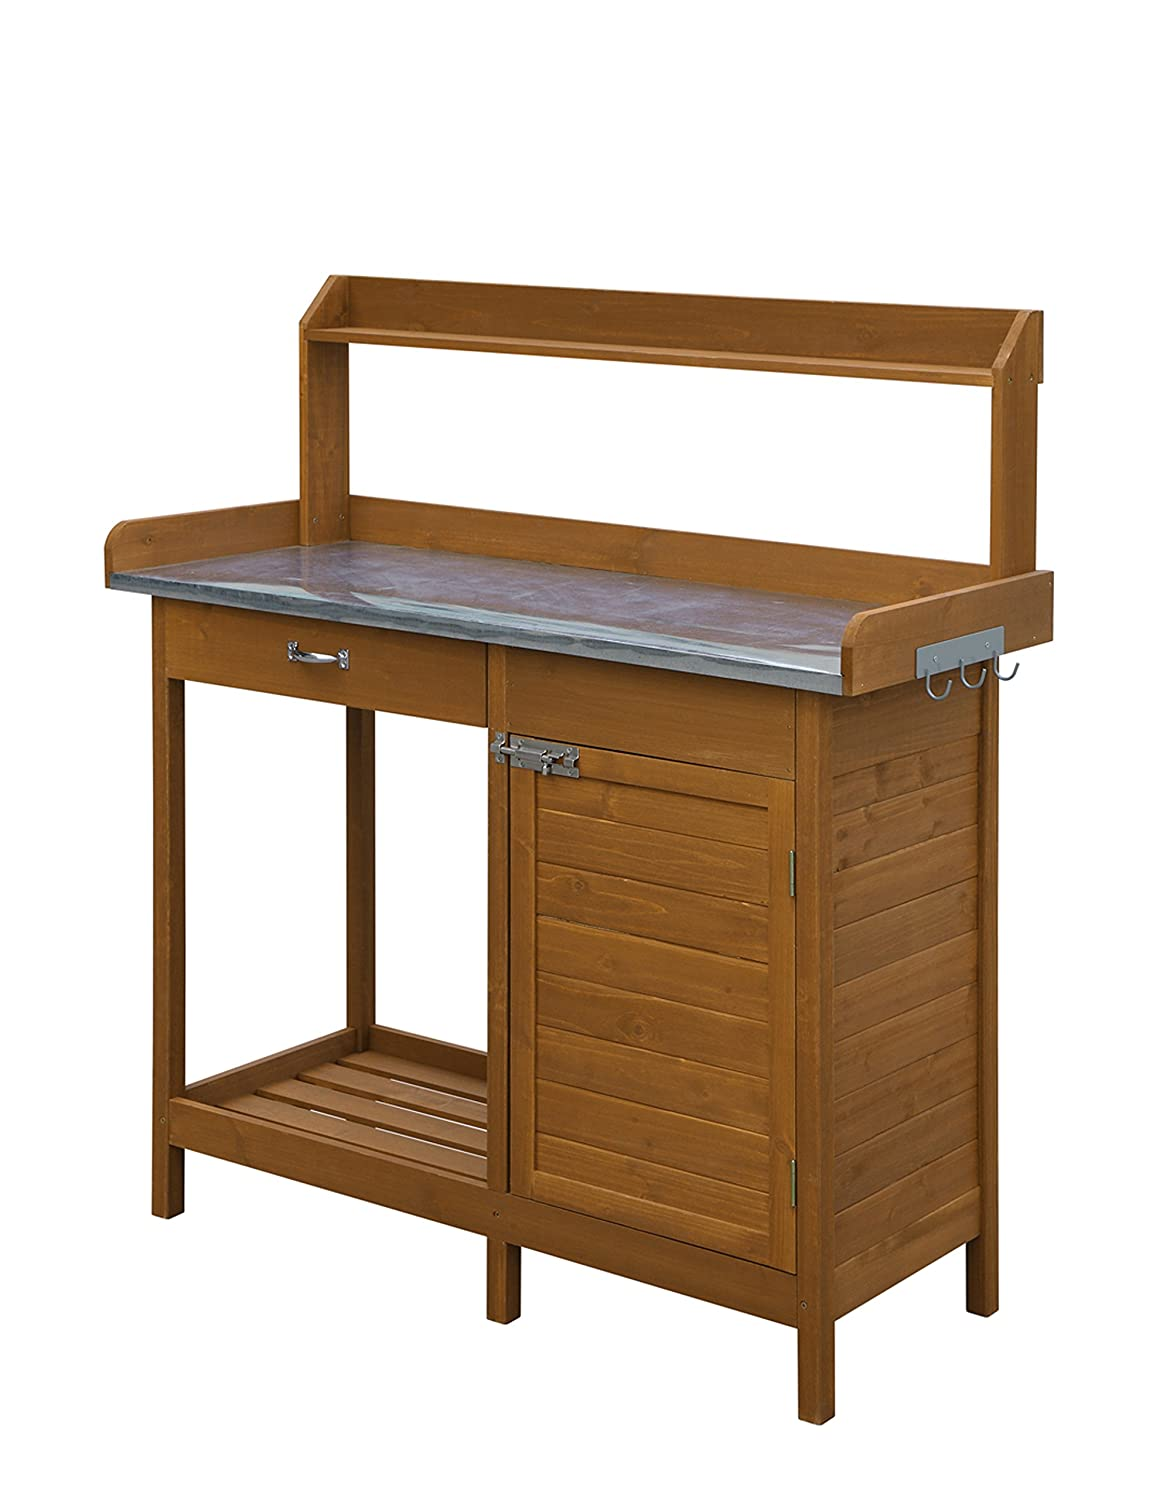 Amazon.com : Convenience Concepts Deluxe Potting Bench With Cabinet ...